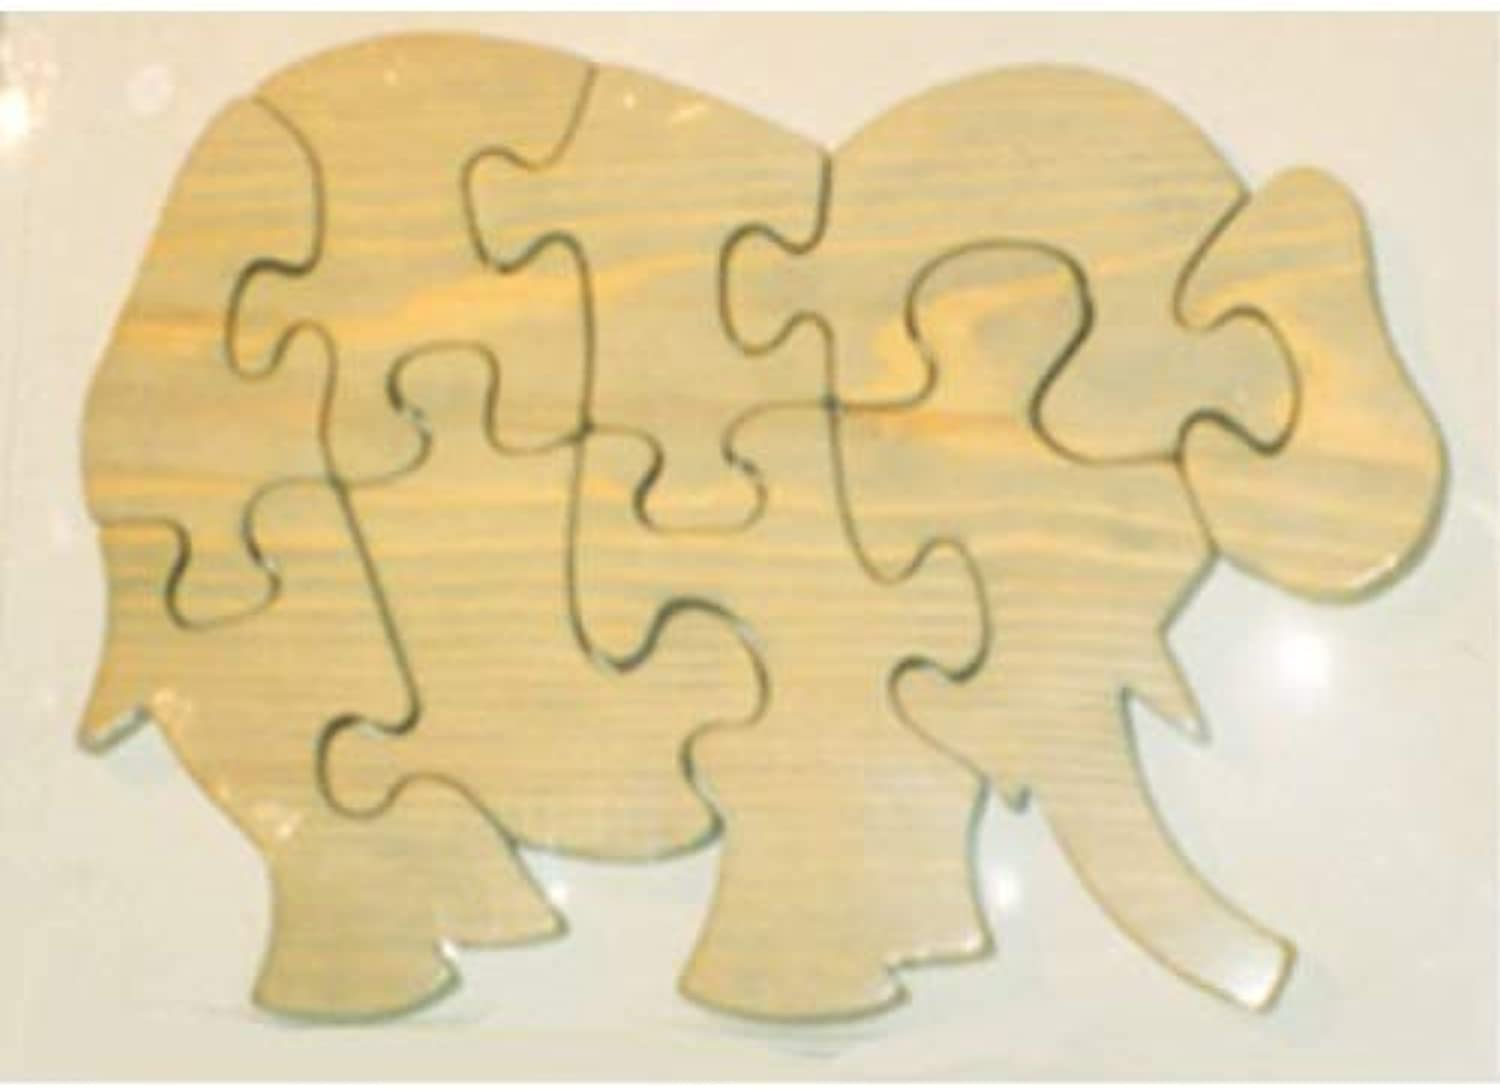 THE PUZZLEMAN TOYS W1207 Wooden Educational Jig Saw Puzzle  Large Elephant